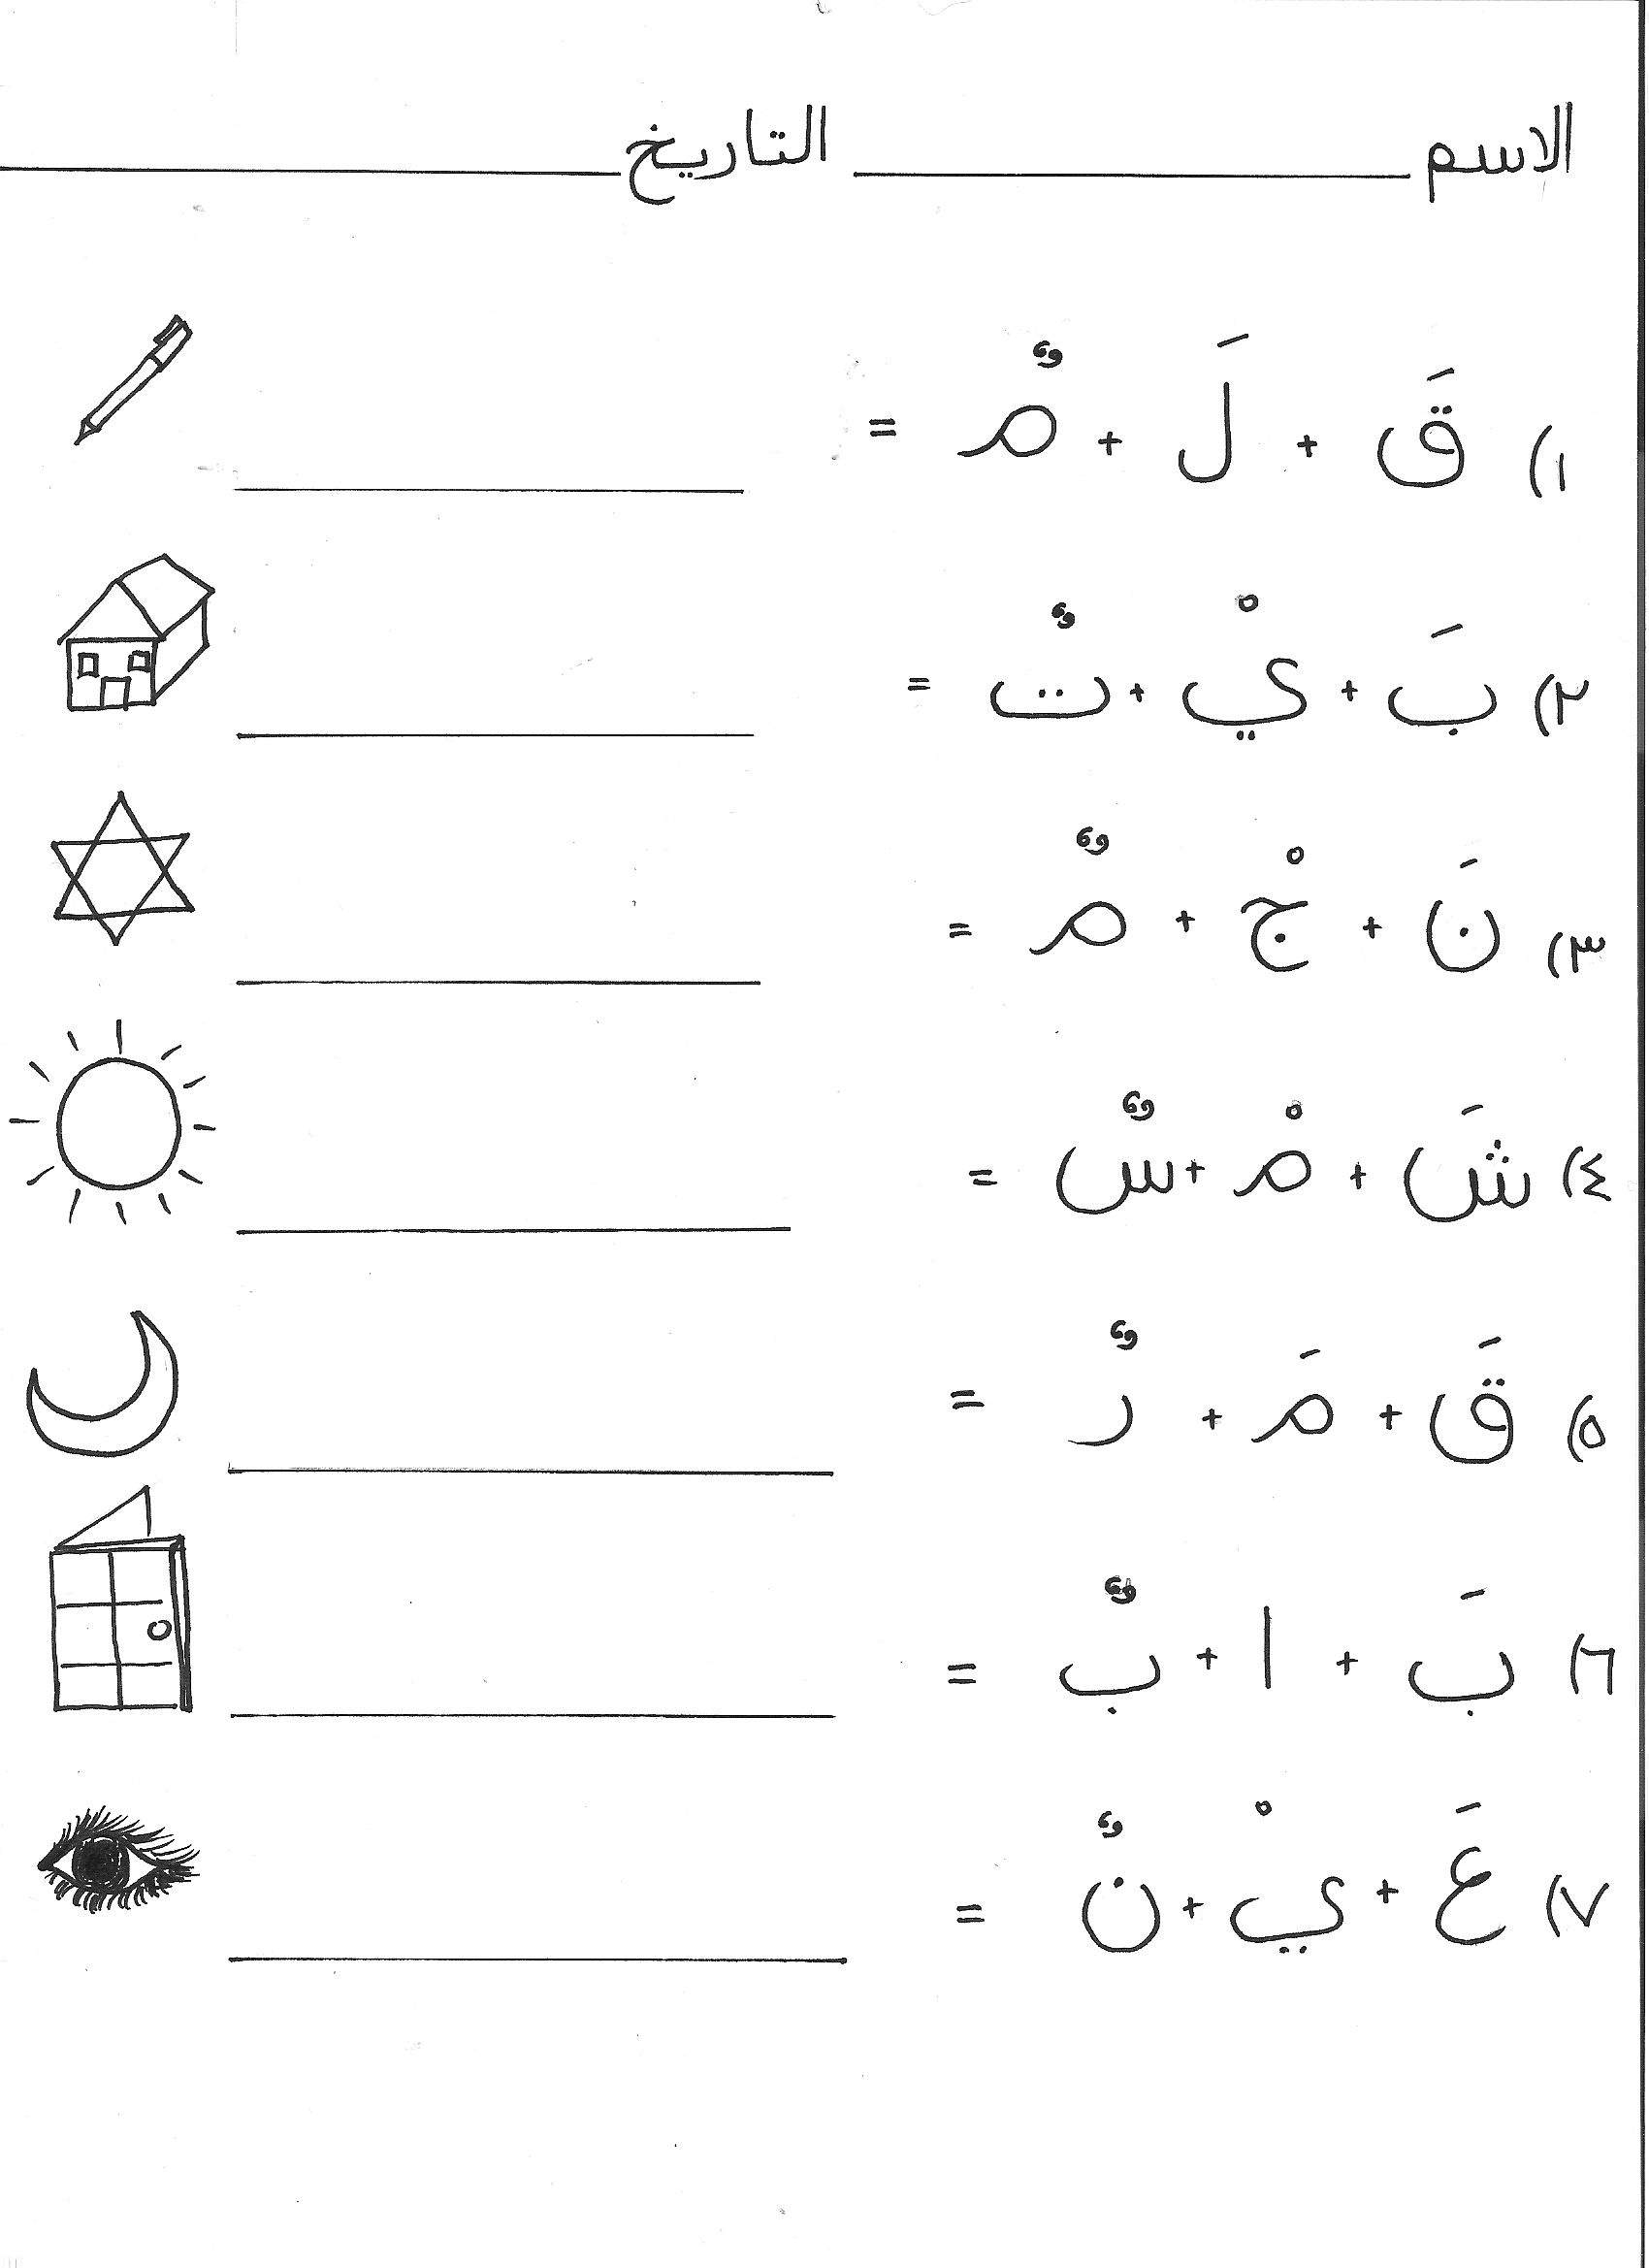 Joining Letters To Make Words - Funarabicworksheets | Arabic within Letter Join Worksheets